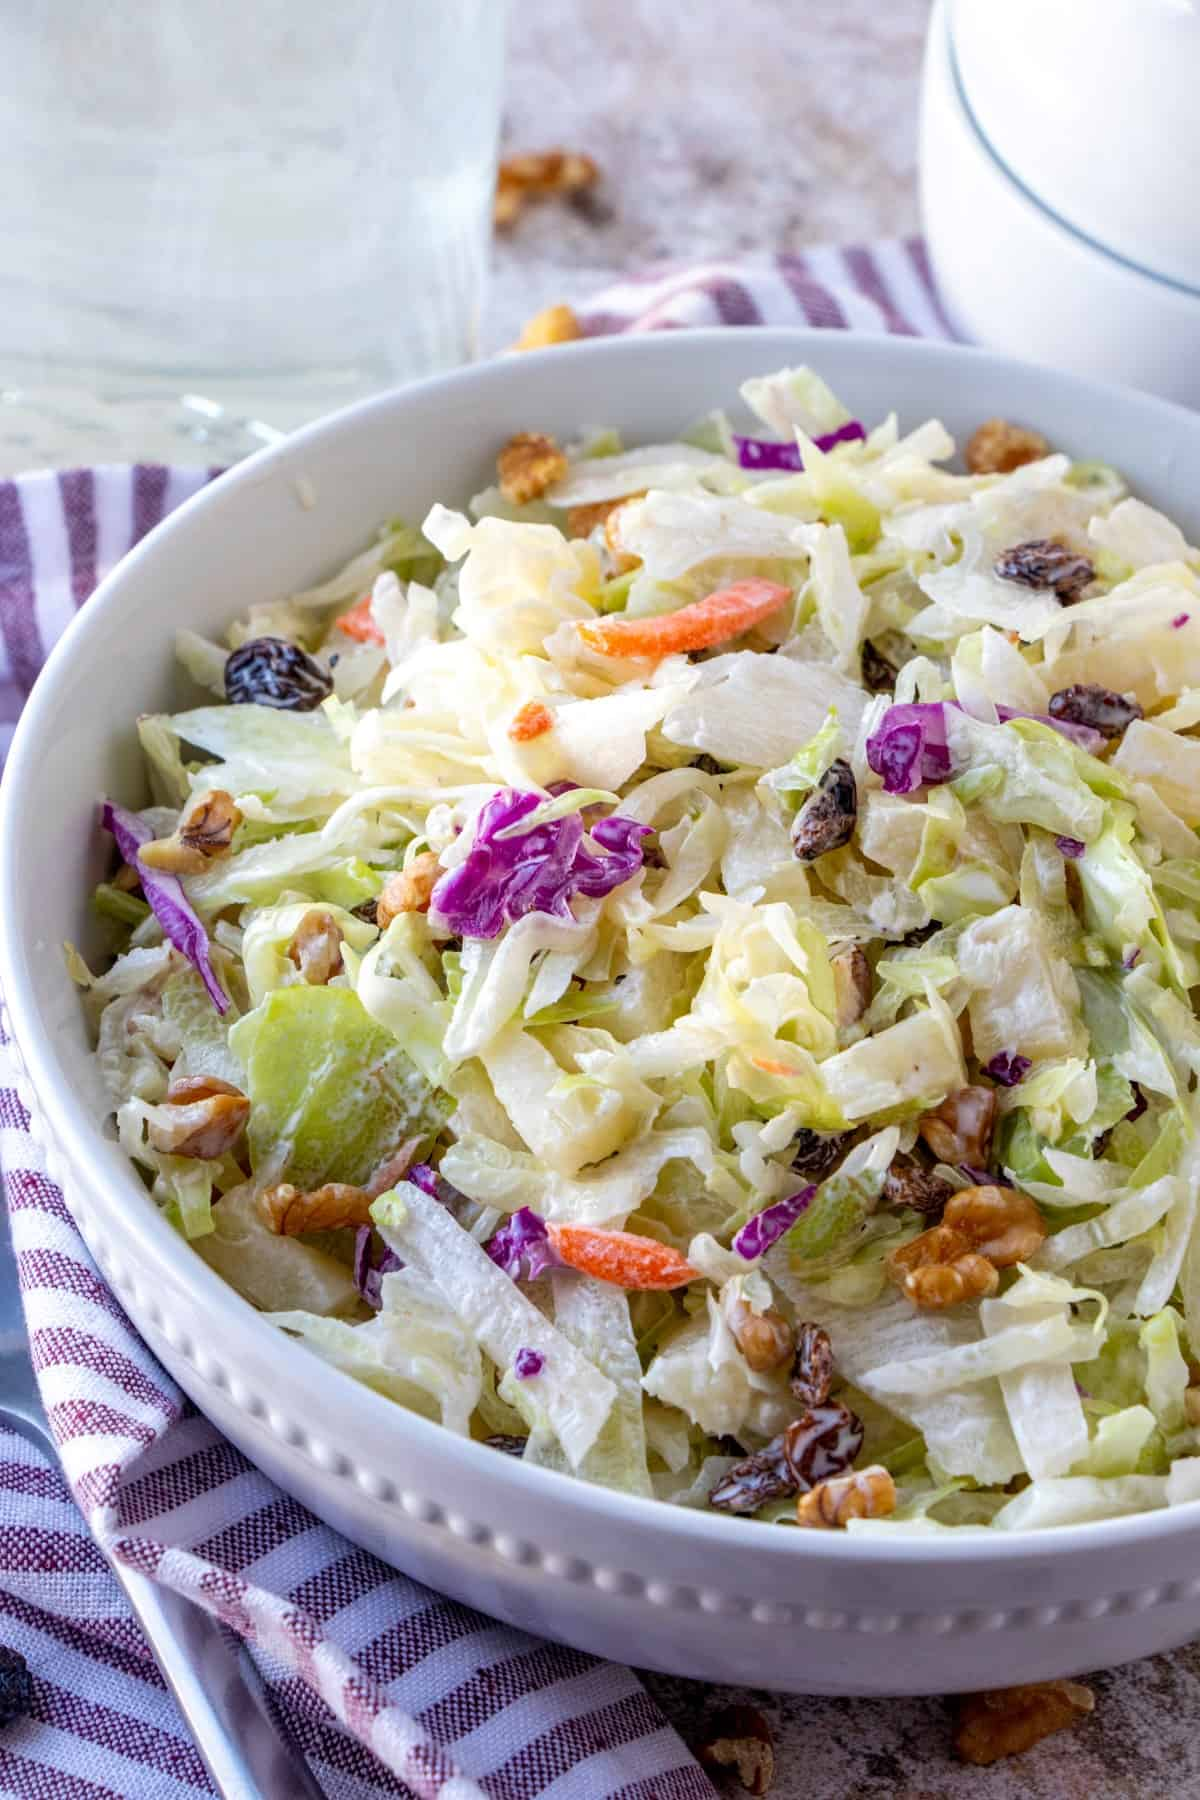 Vertical shot of Pineapple Walnut Raisin Coleslaw in a white ceramic bowl.